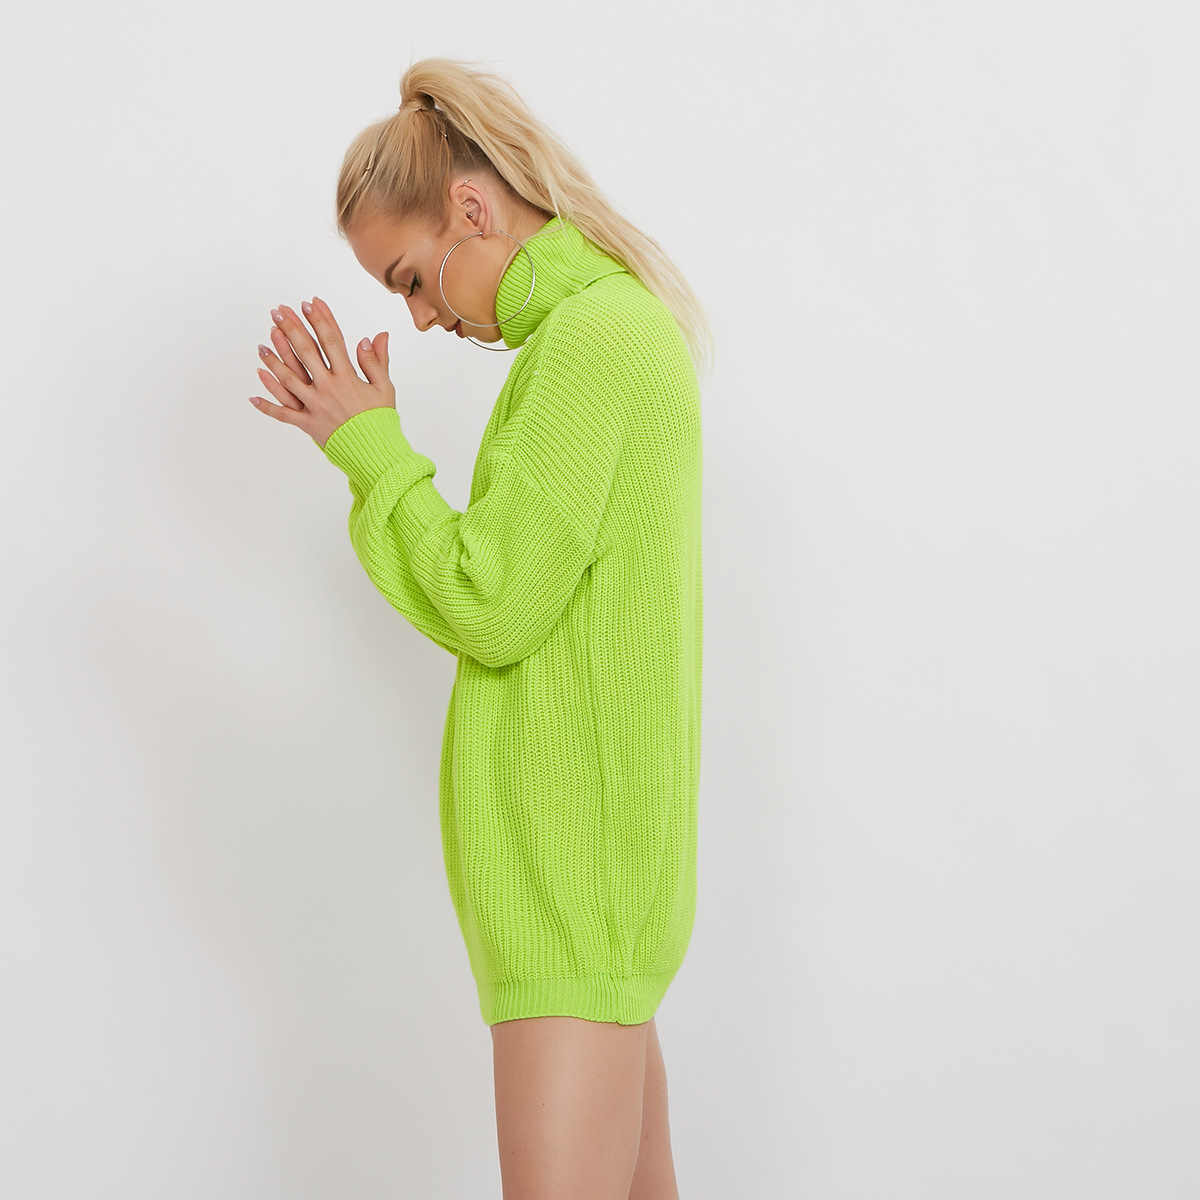 Women's Neon Sweater Dress Girl's Knitting Oversized